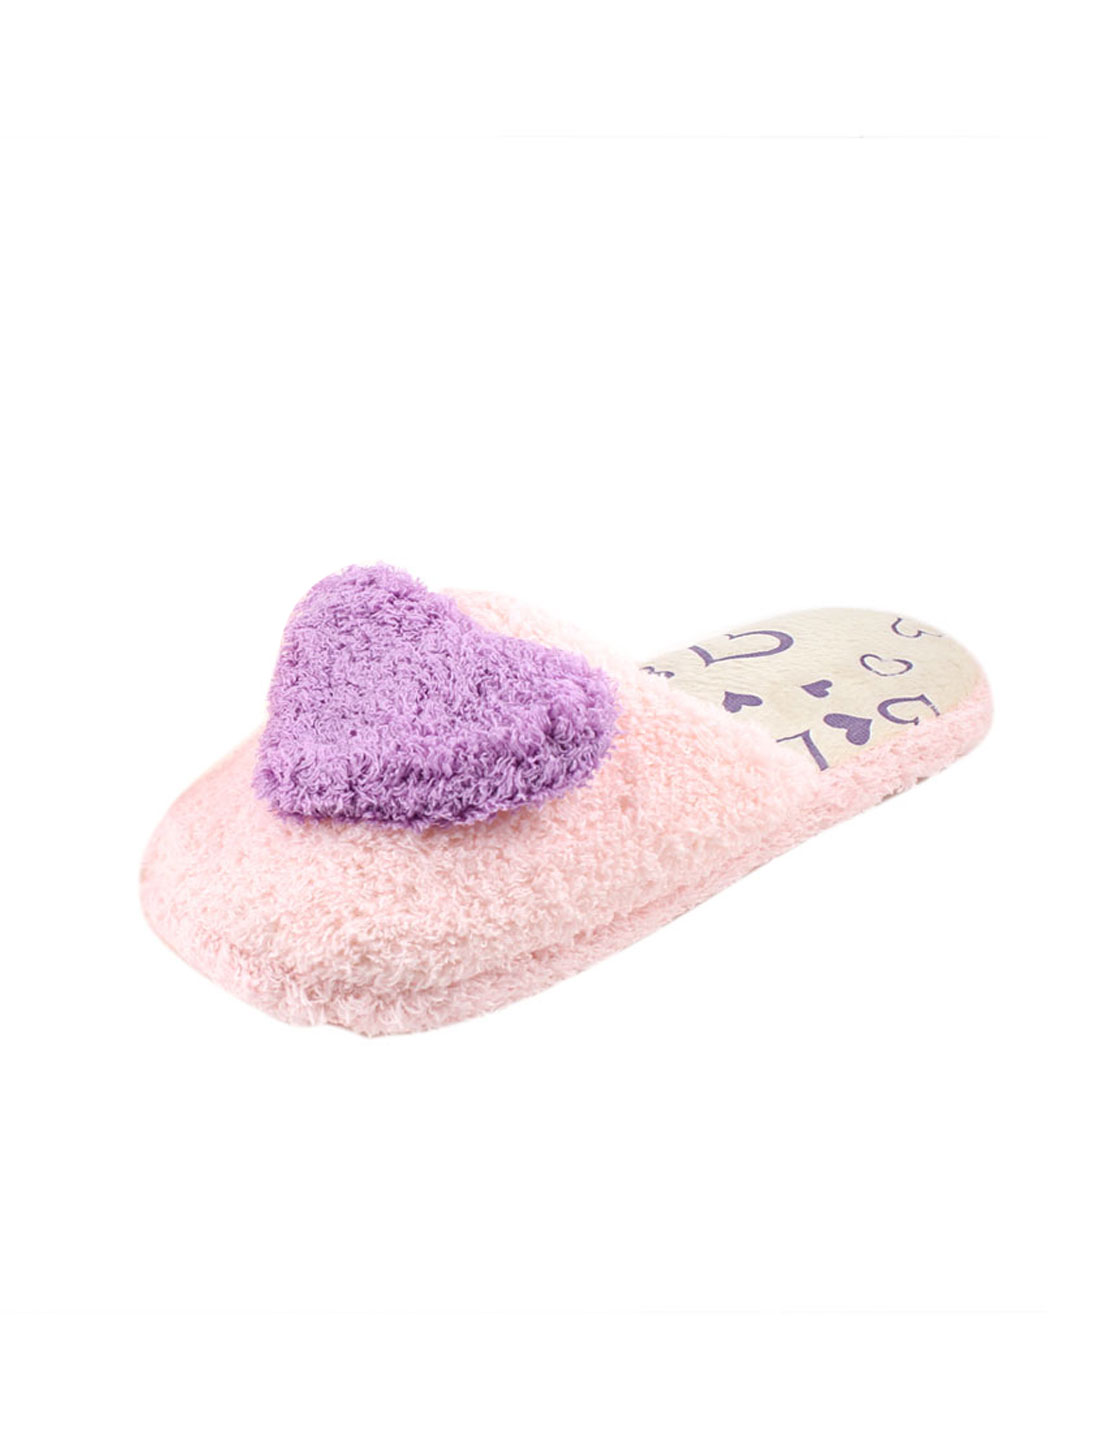 Lady Purple Heart Orament Rubber Sole Warm Plush Slippers Shoes UK Size 5 Pair